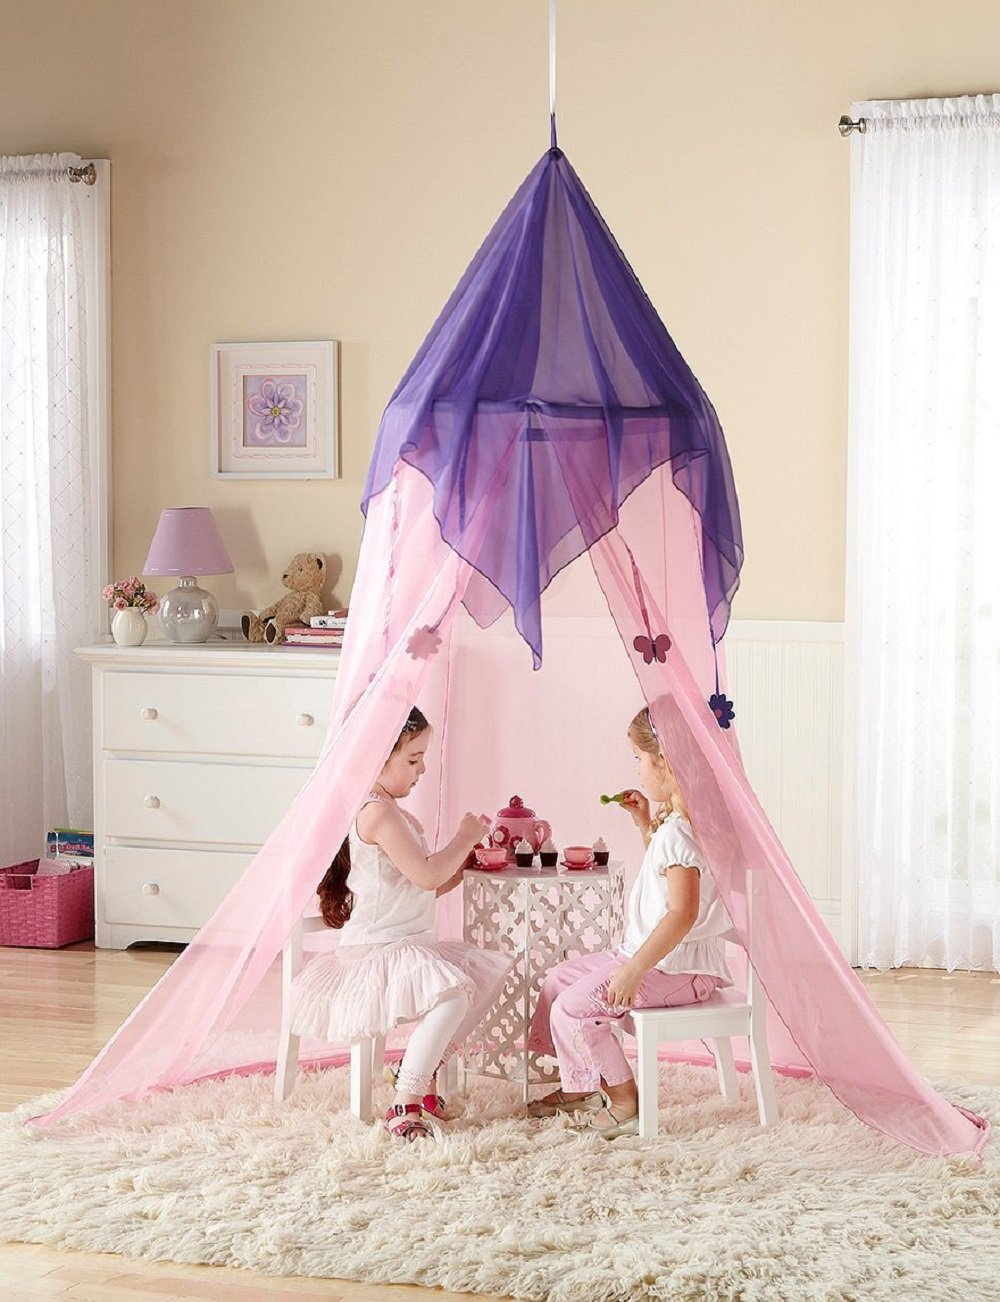 Discovery Kids- Fairy Tale Princess Canopy Pink by Merchsource